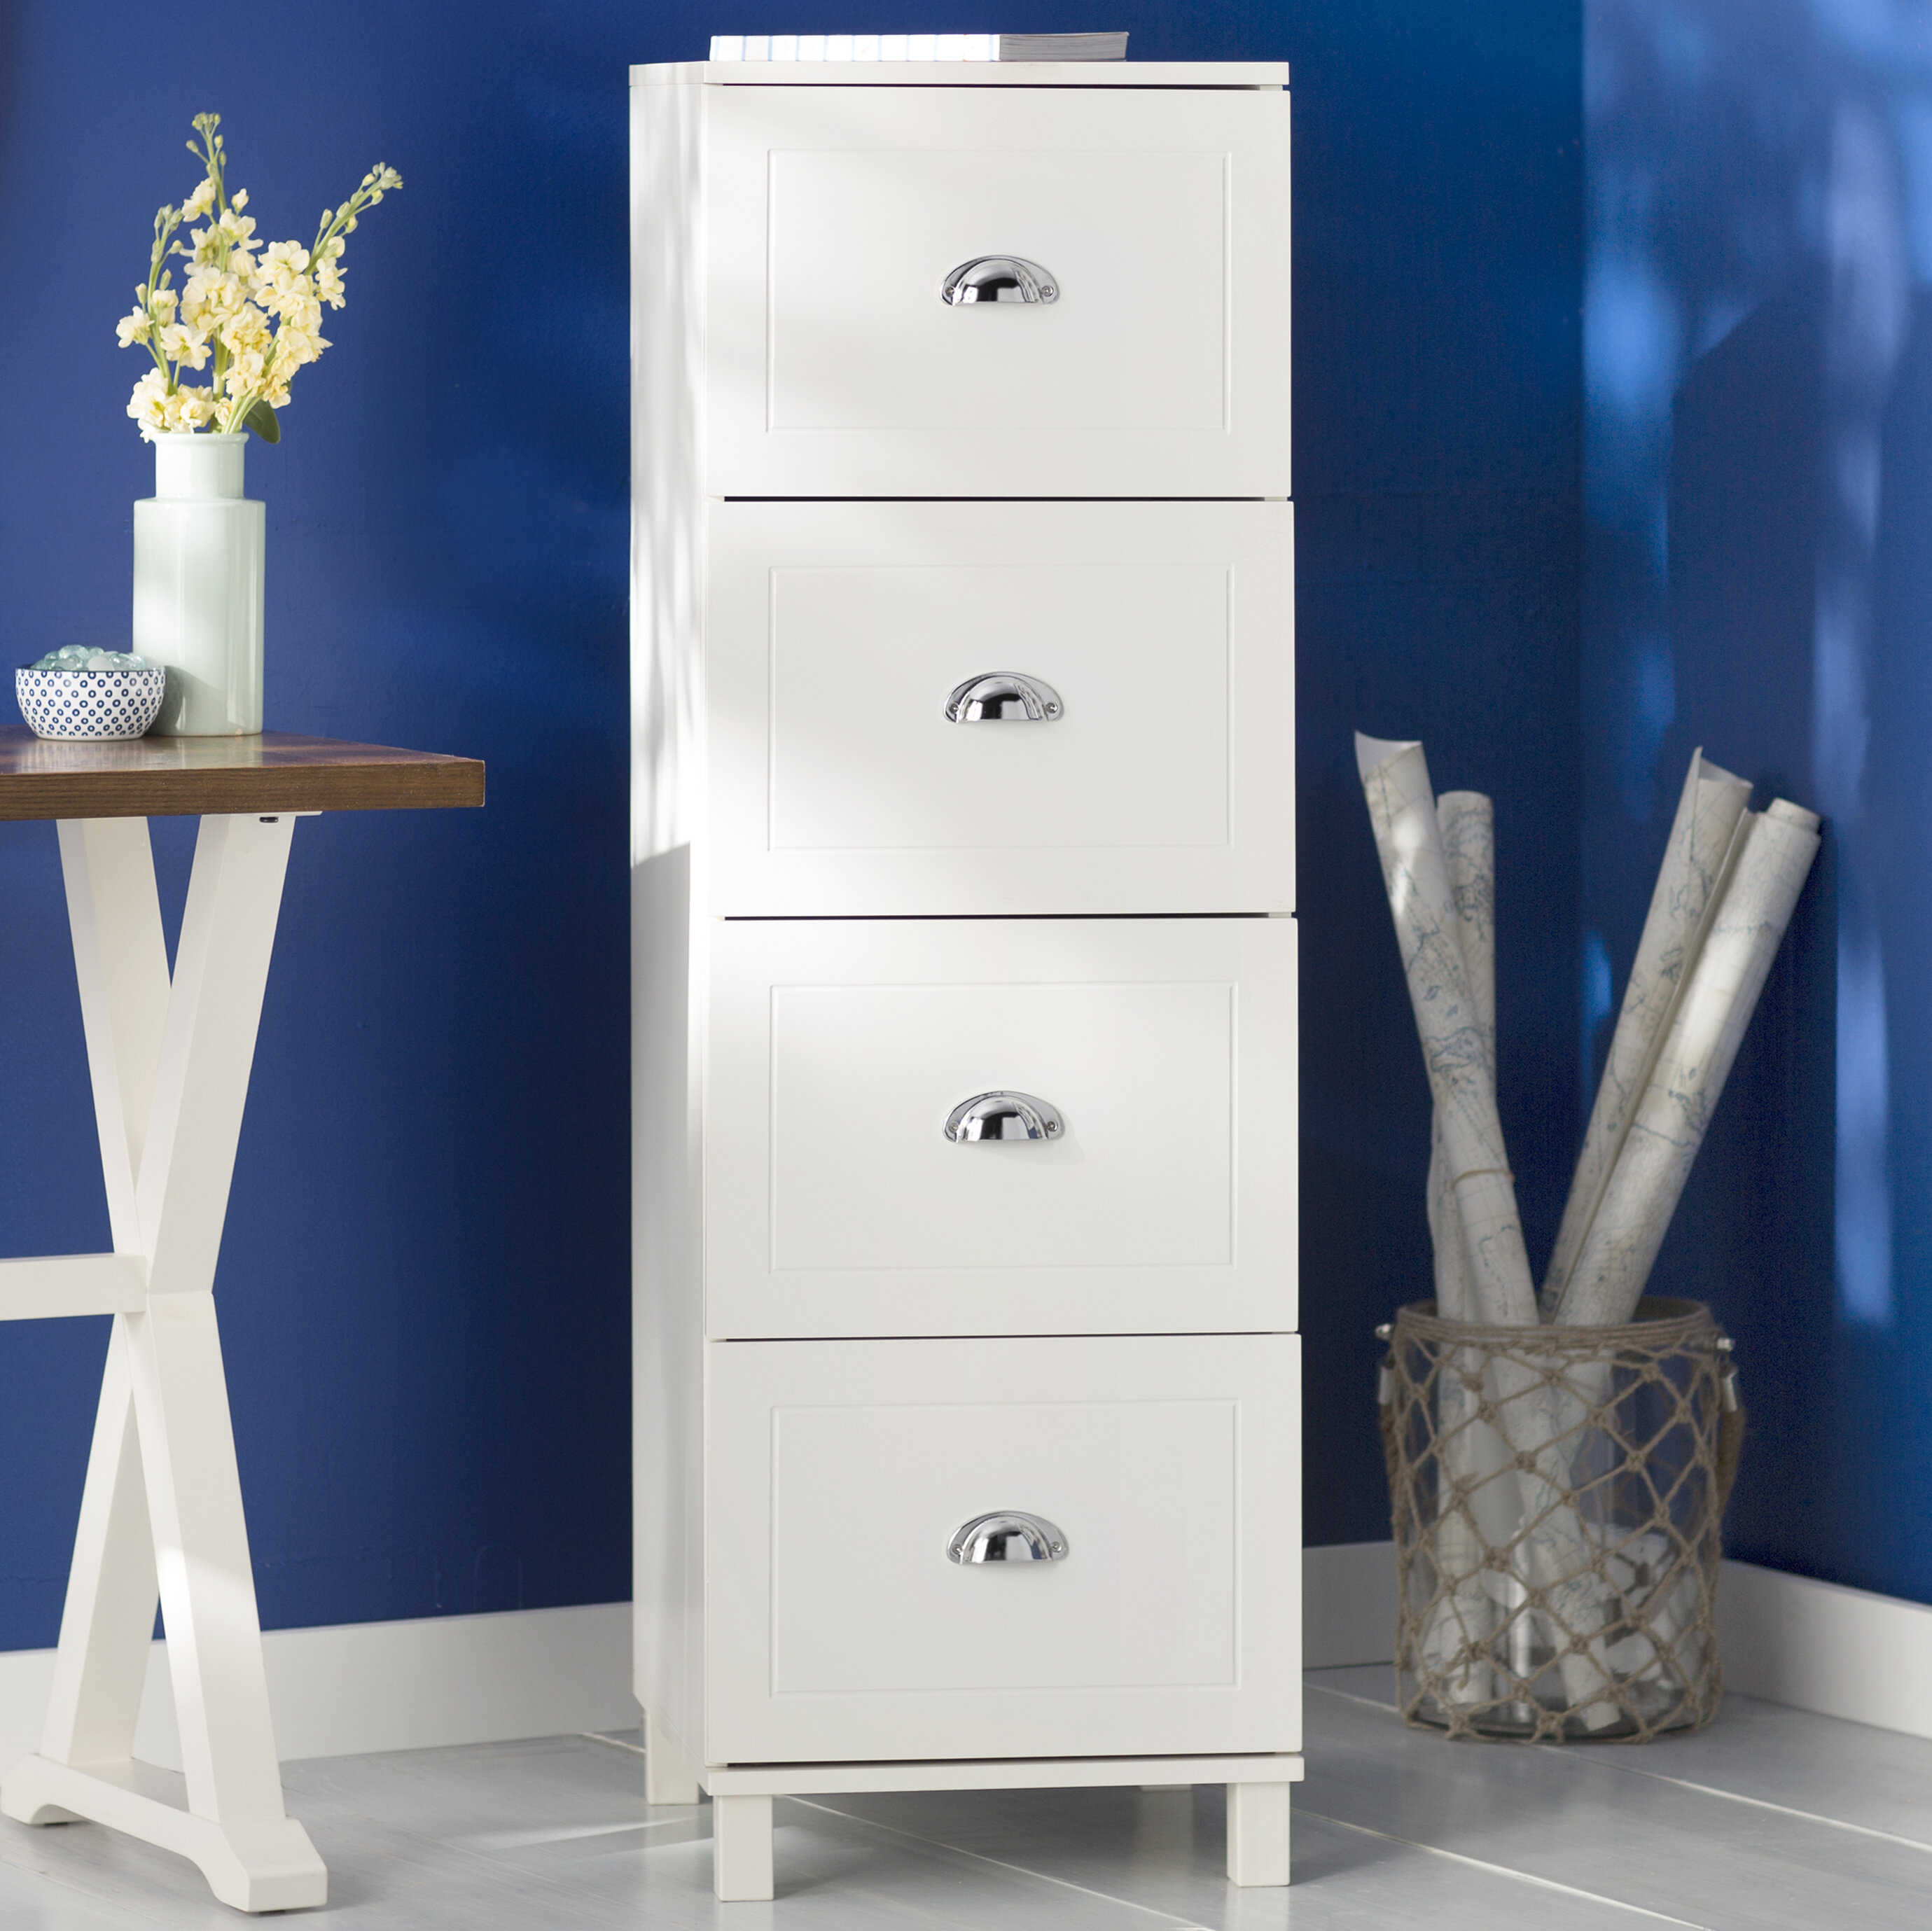 filing furniture old drawer drawers office business products white storage cabinets klein cabinet